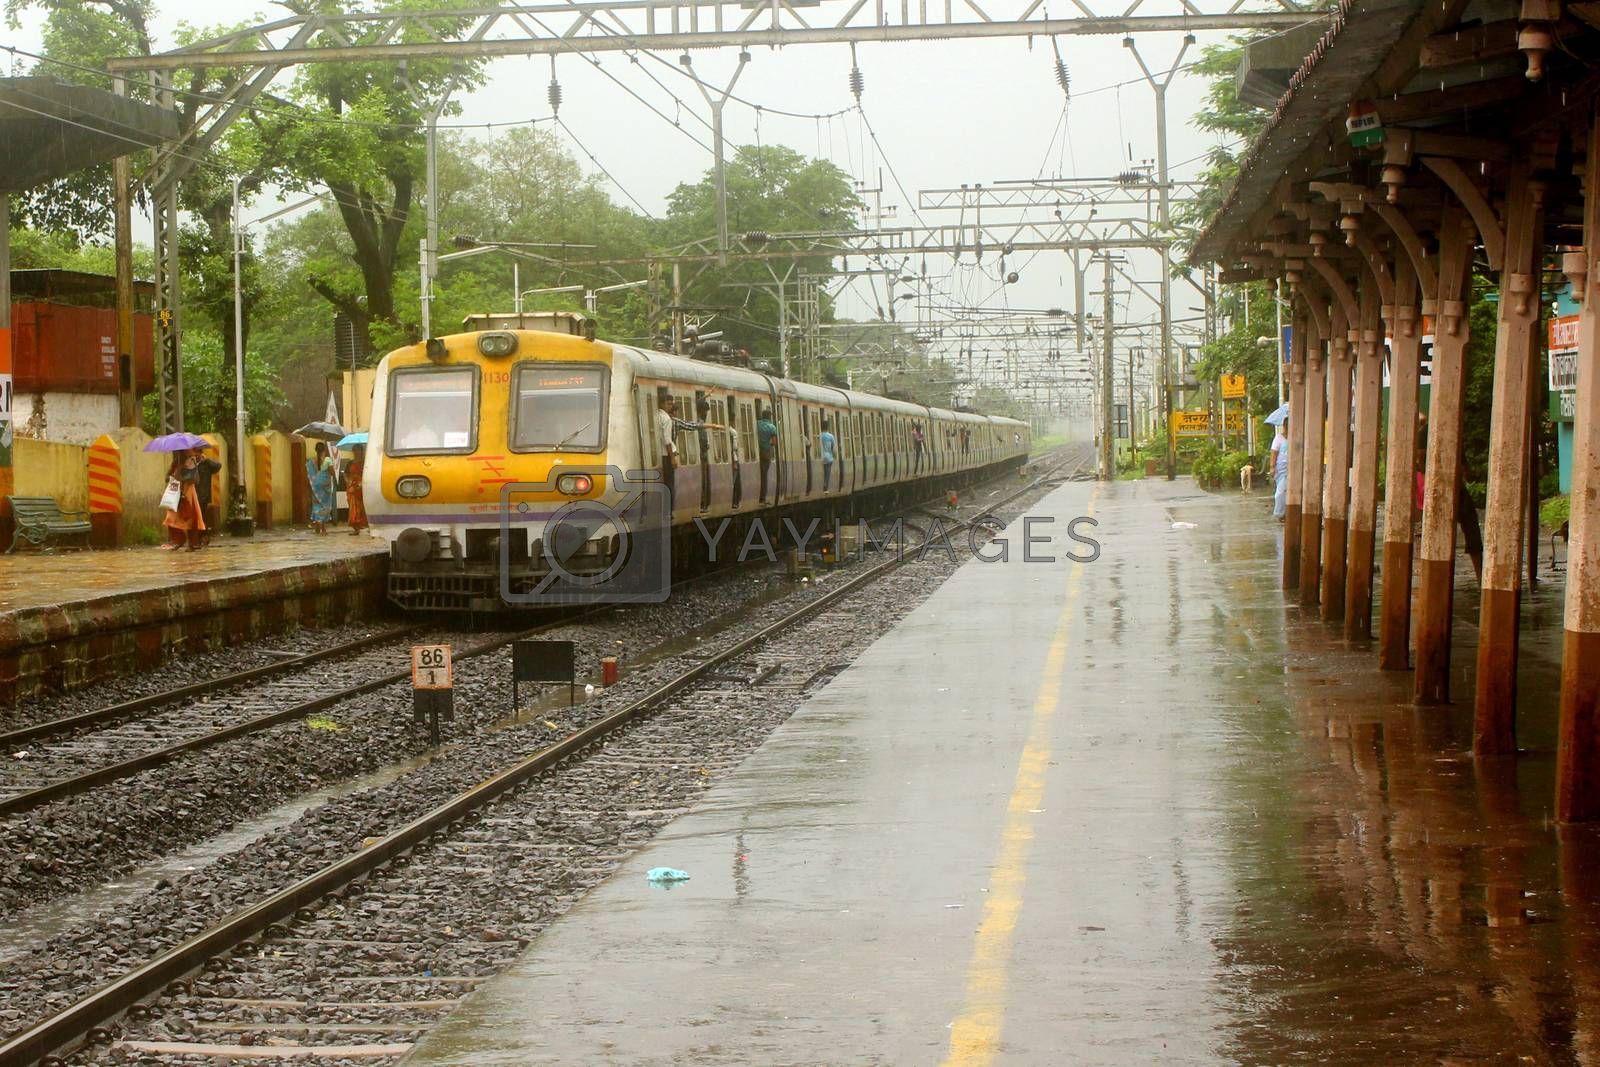 An Indian local train leaves a rural station during heavy monsoon rains season